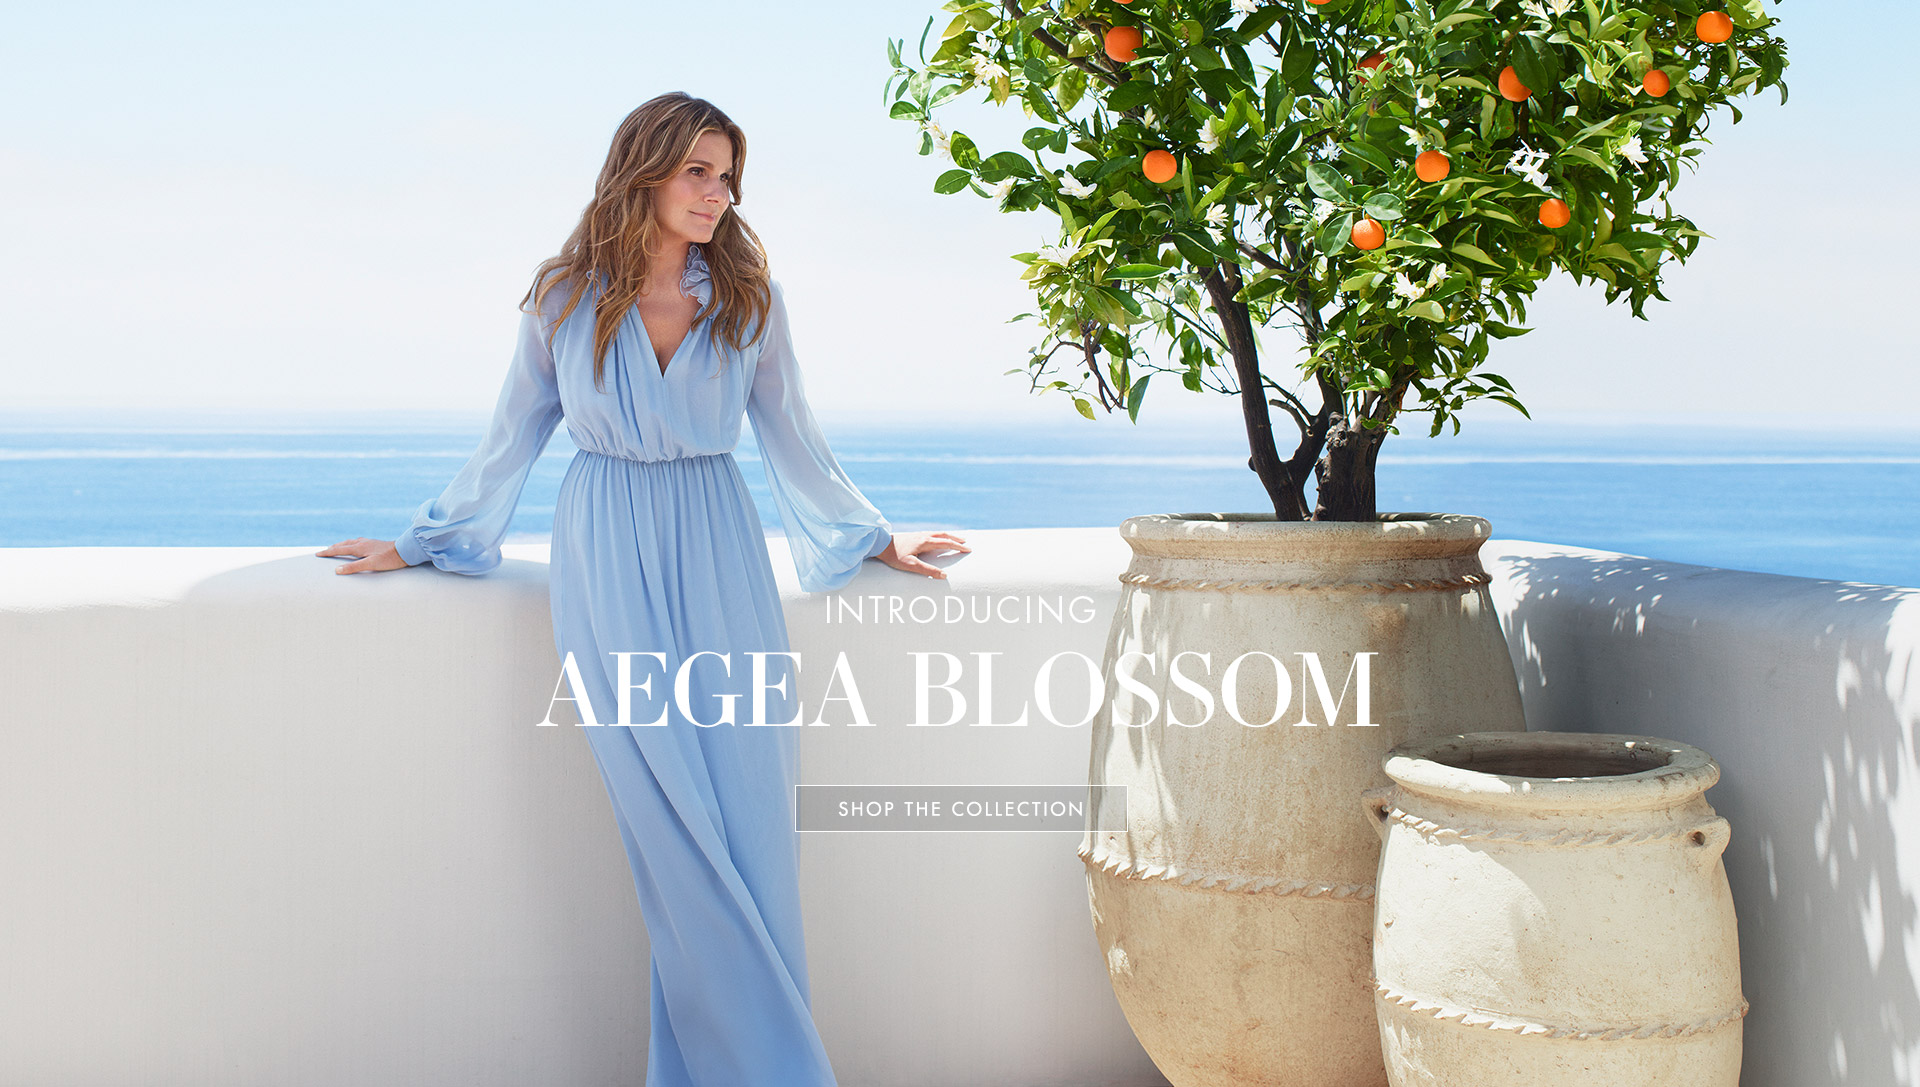 Aerin Lauder stands in a blue dress with ocean views behind her.